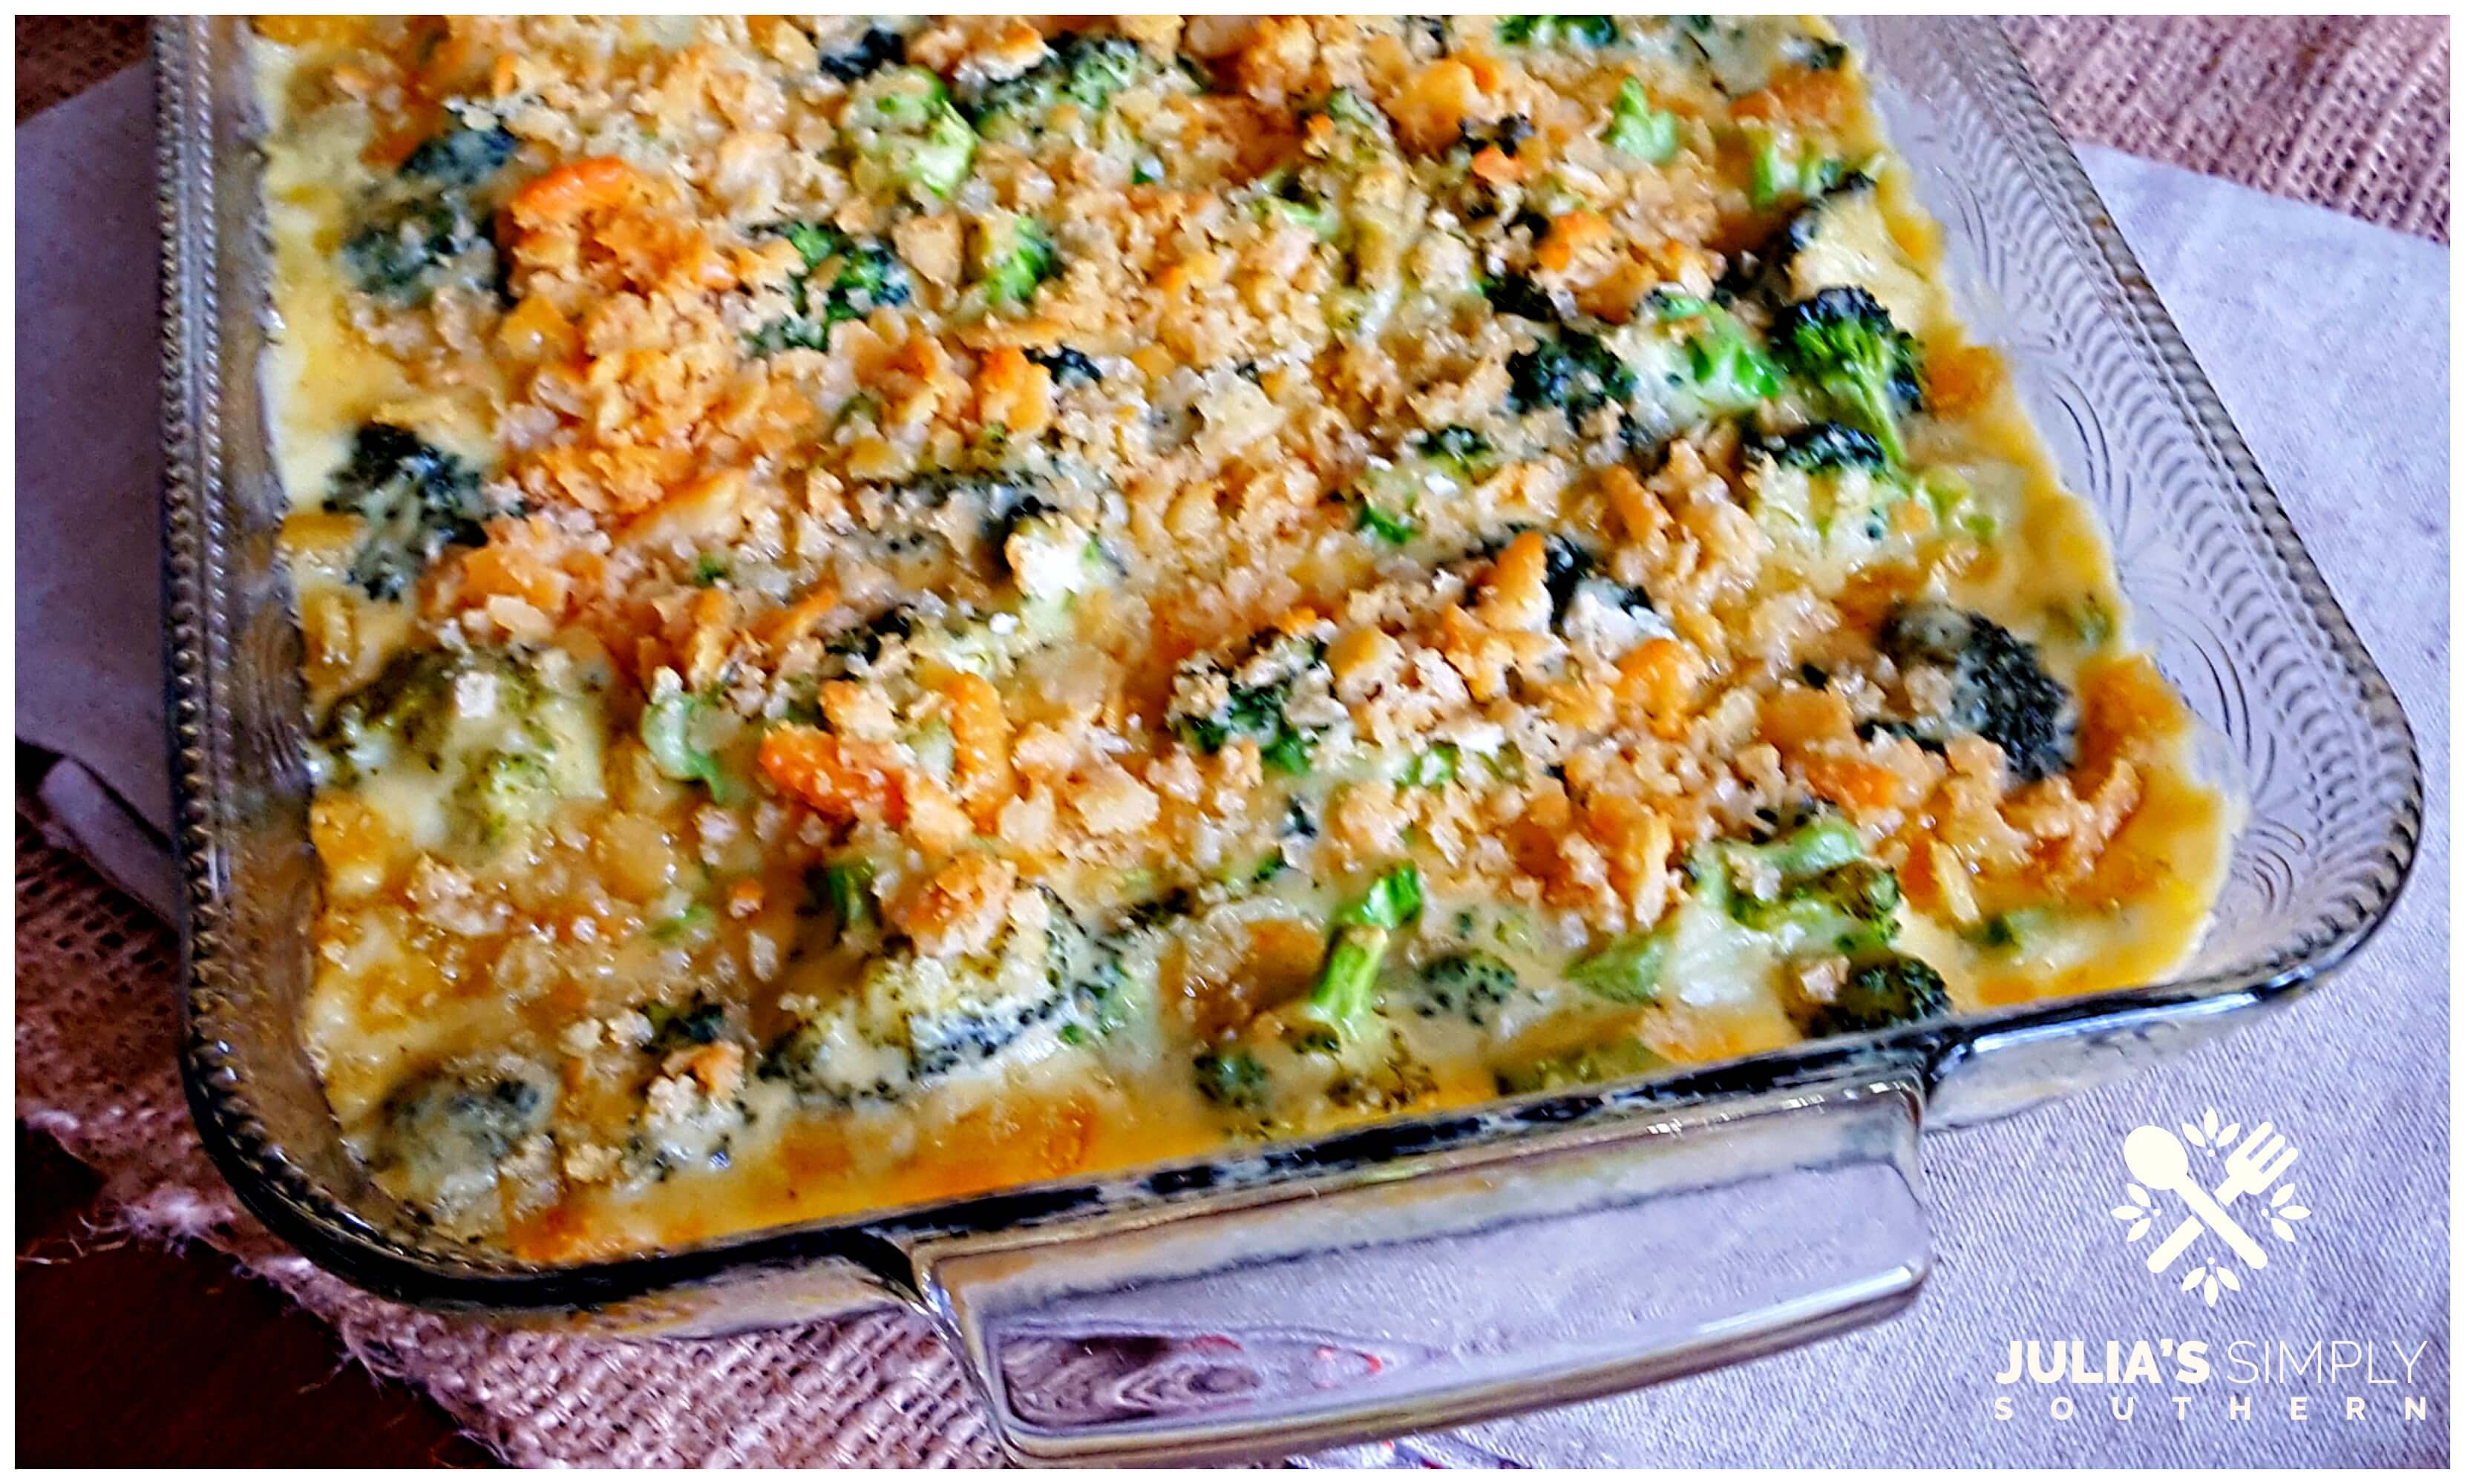 Broccoli Cheese Bake Side Dish using fresh broccoli in a glass casserole dish